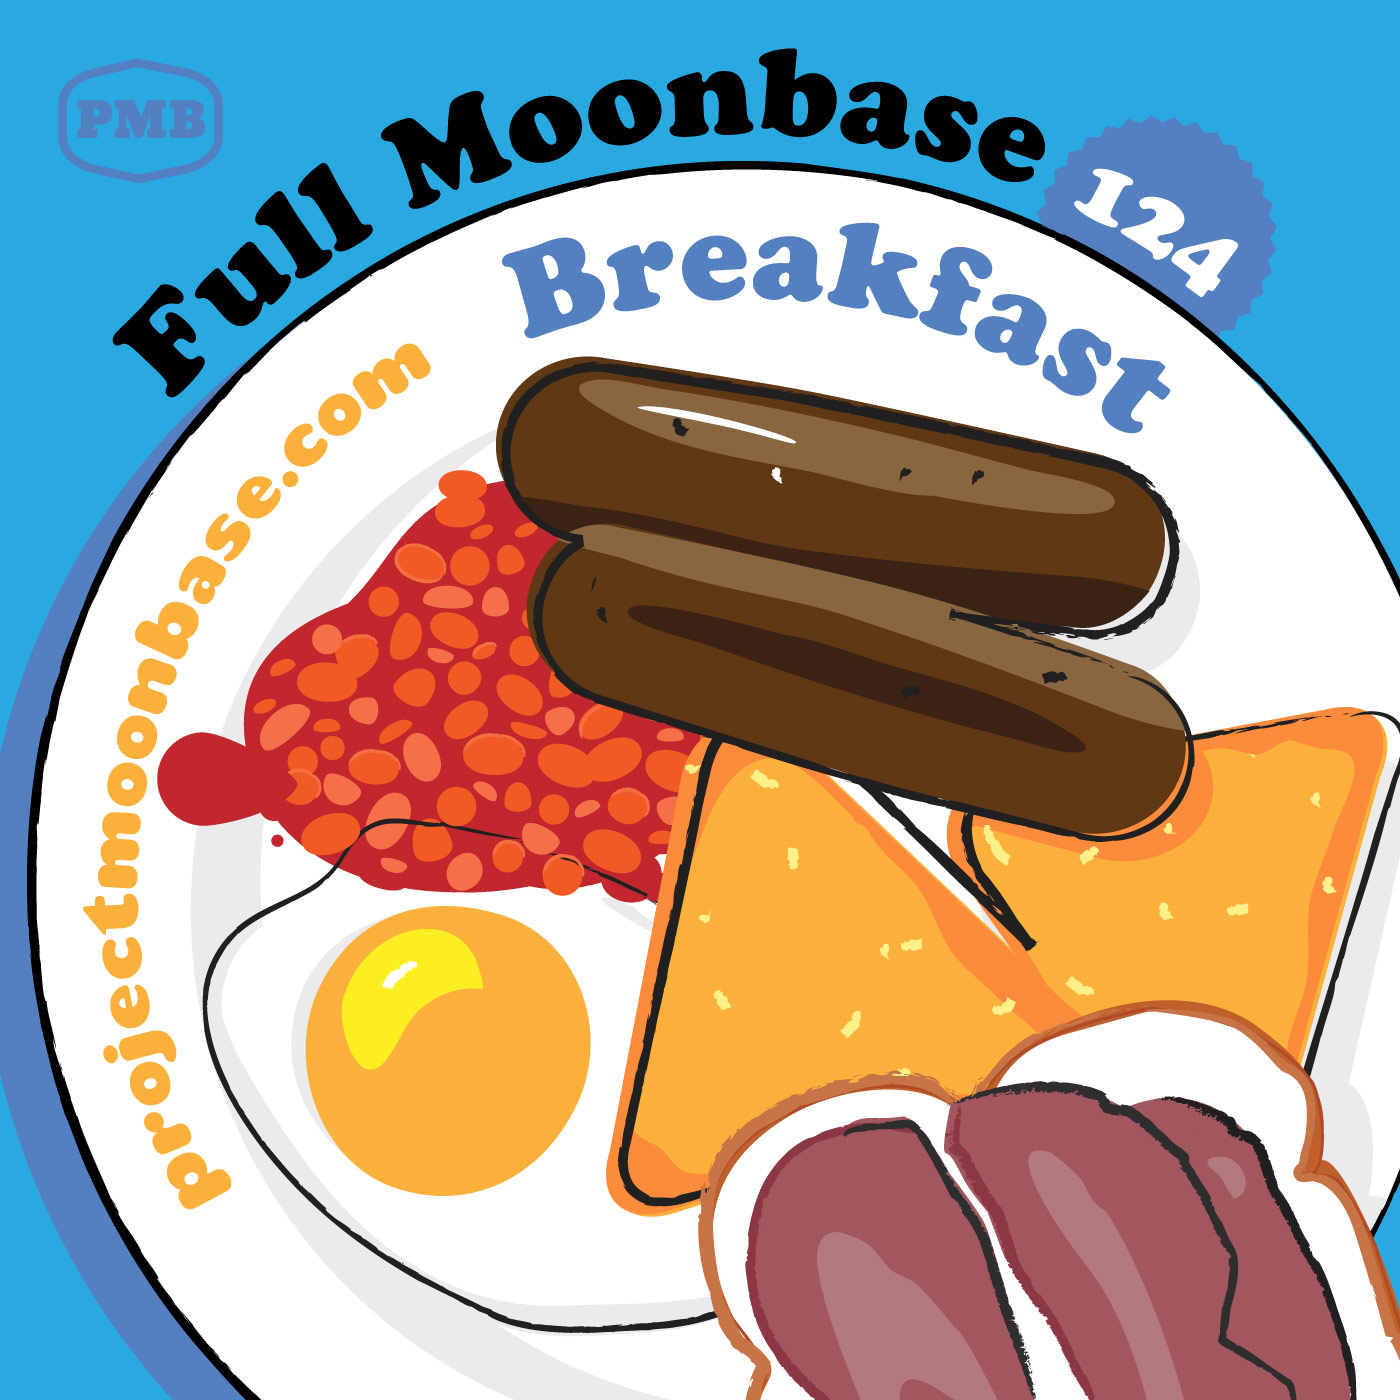 PMB124 Full Moonbase Breakfast